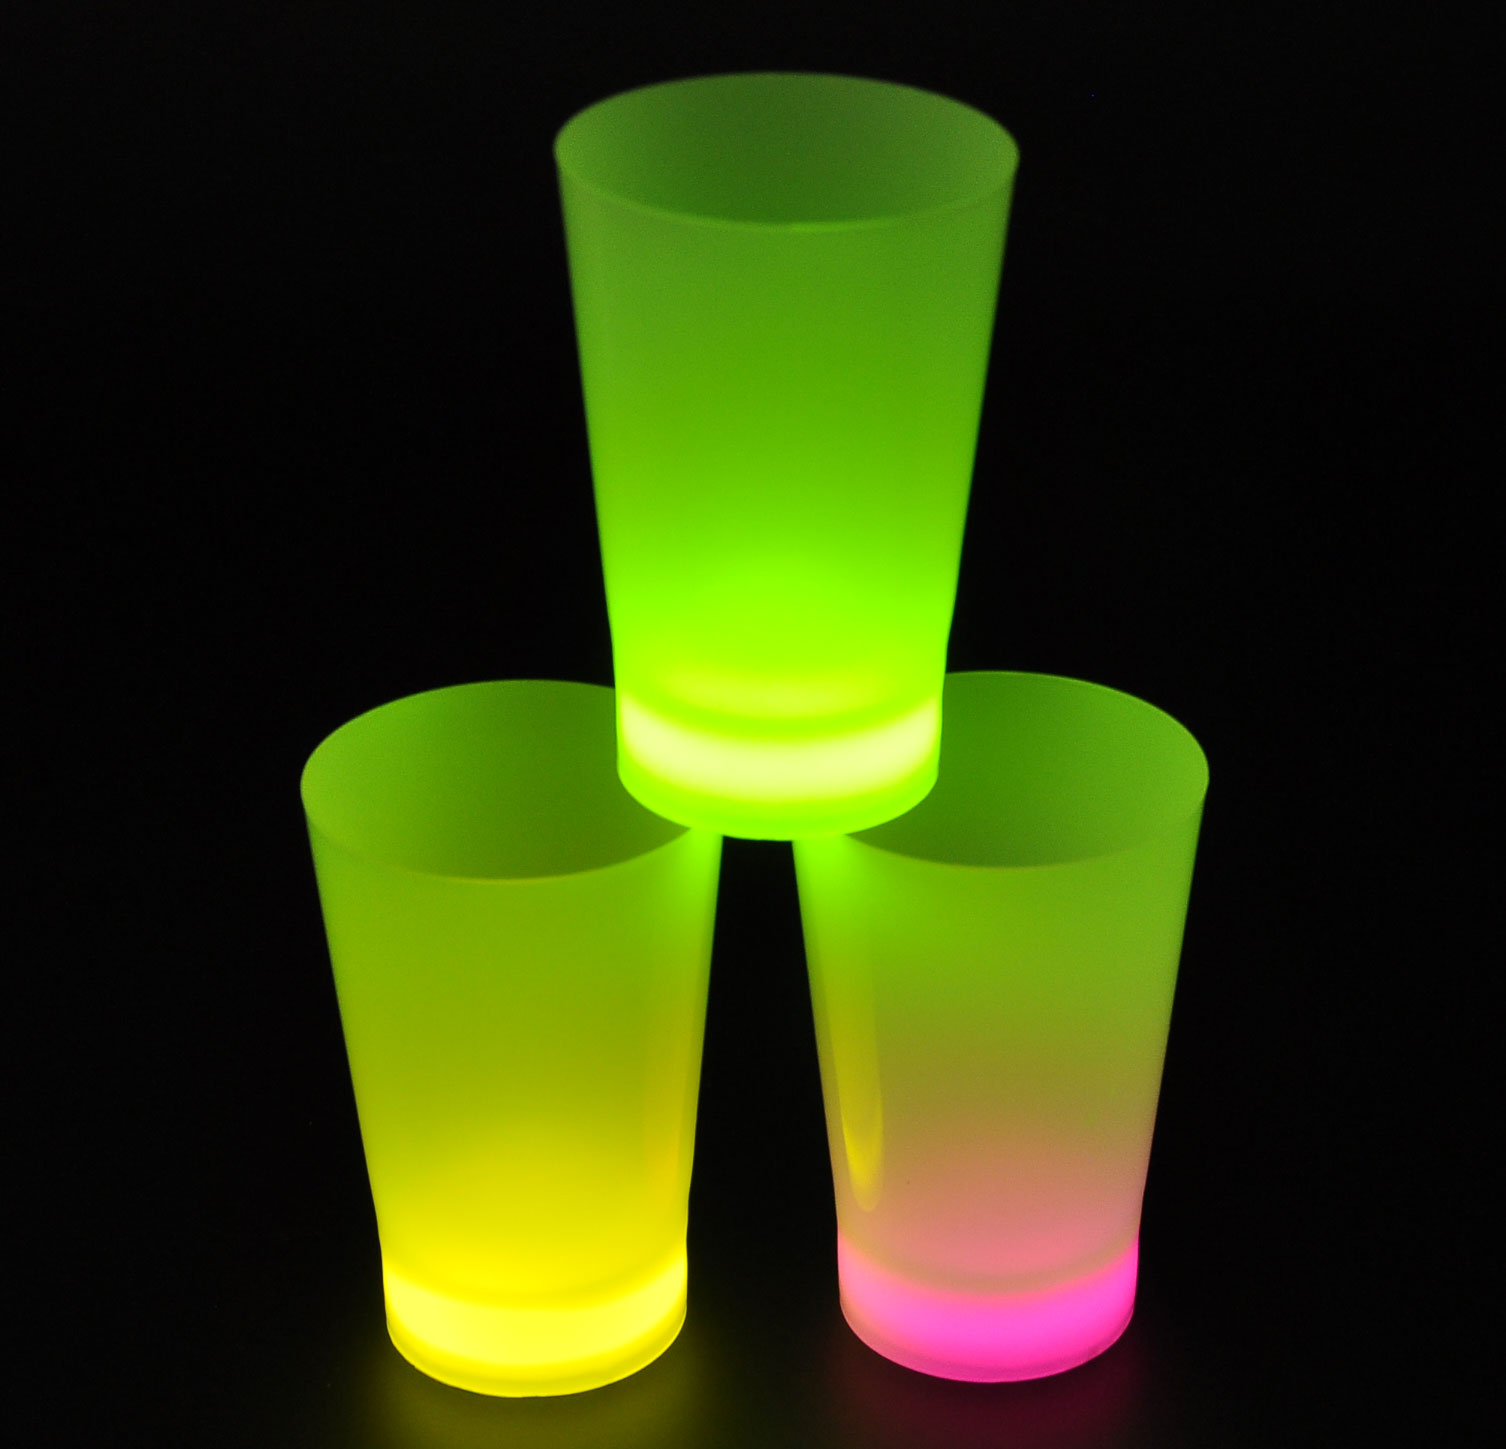 Niceglow diy fluorescent led cup/bar fluorescent fluorescent glass cup/bar dedicated hair light cup